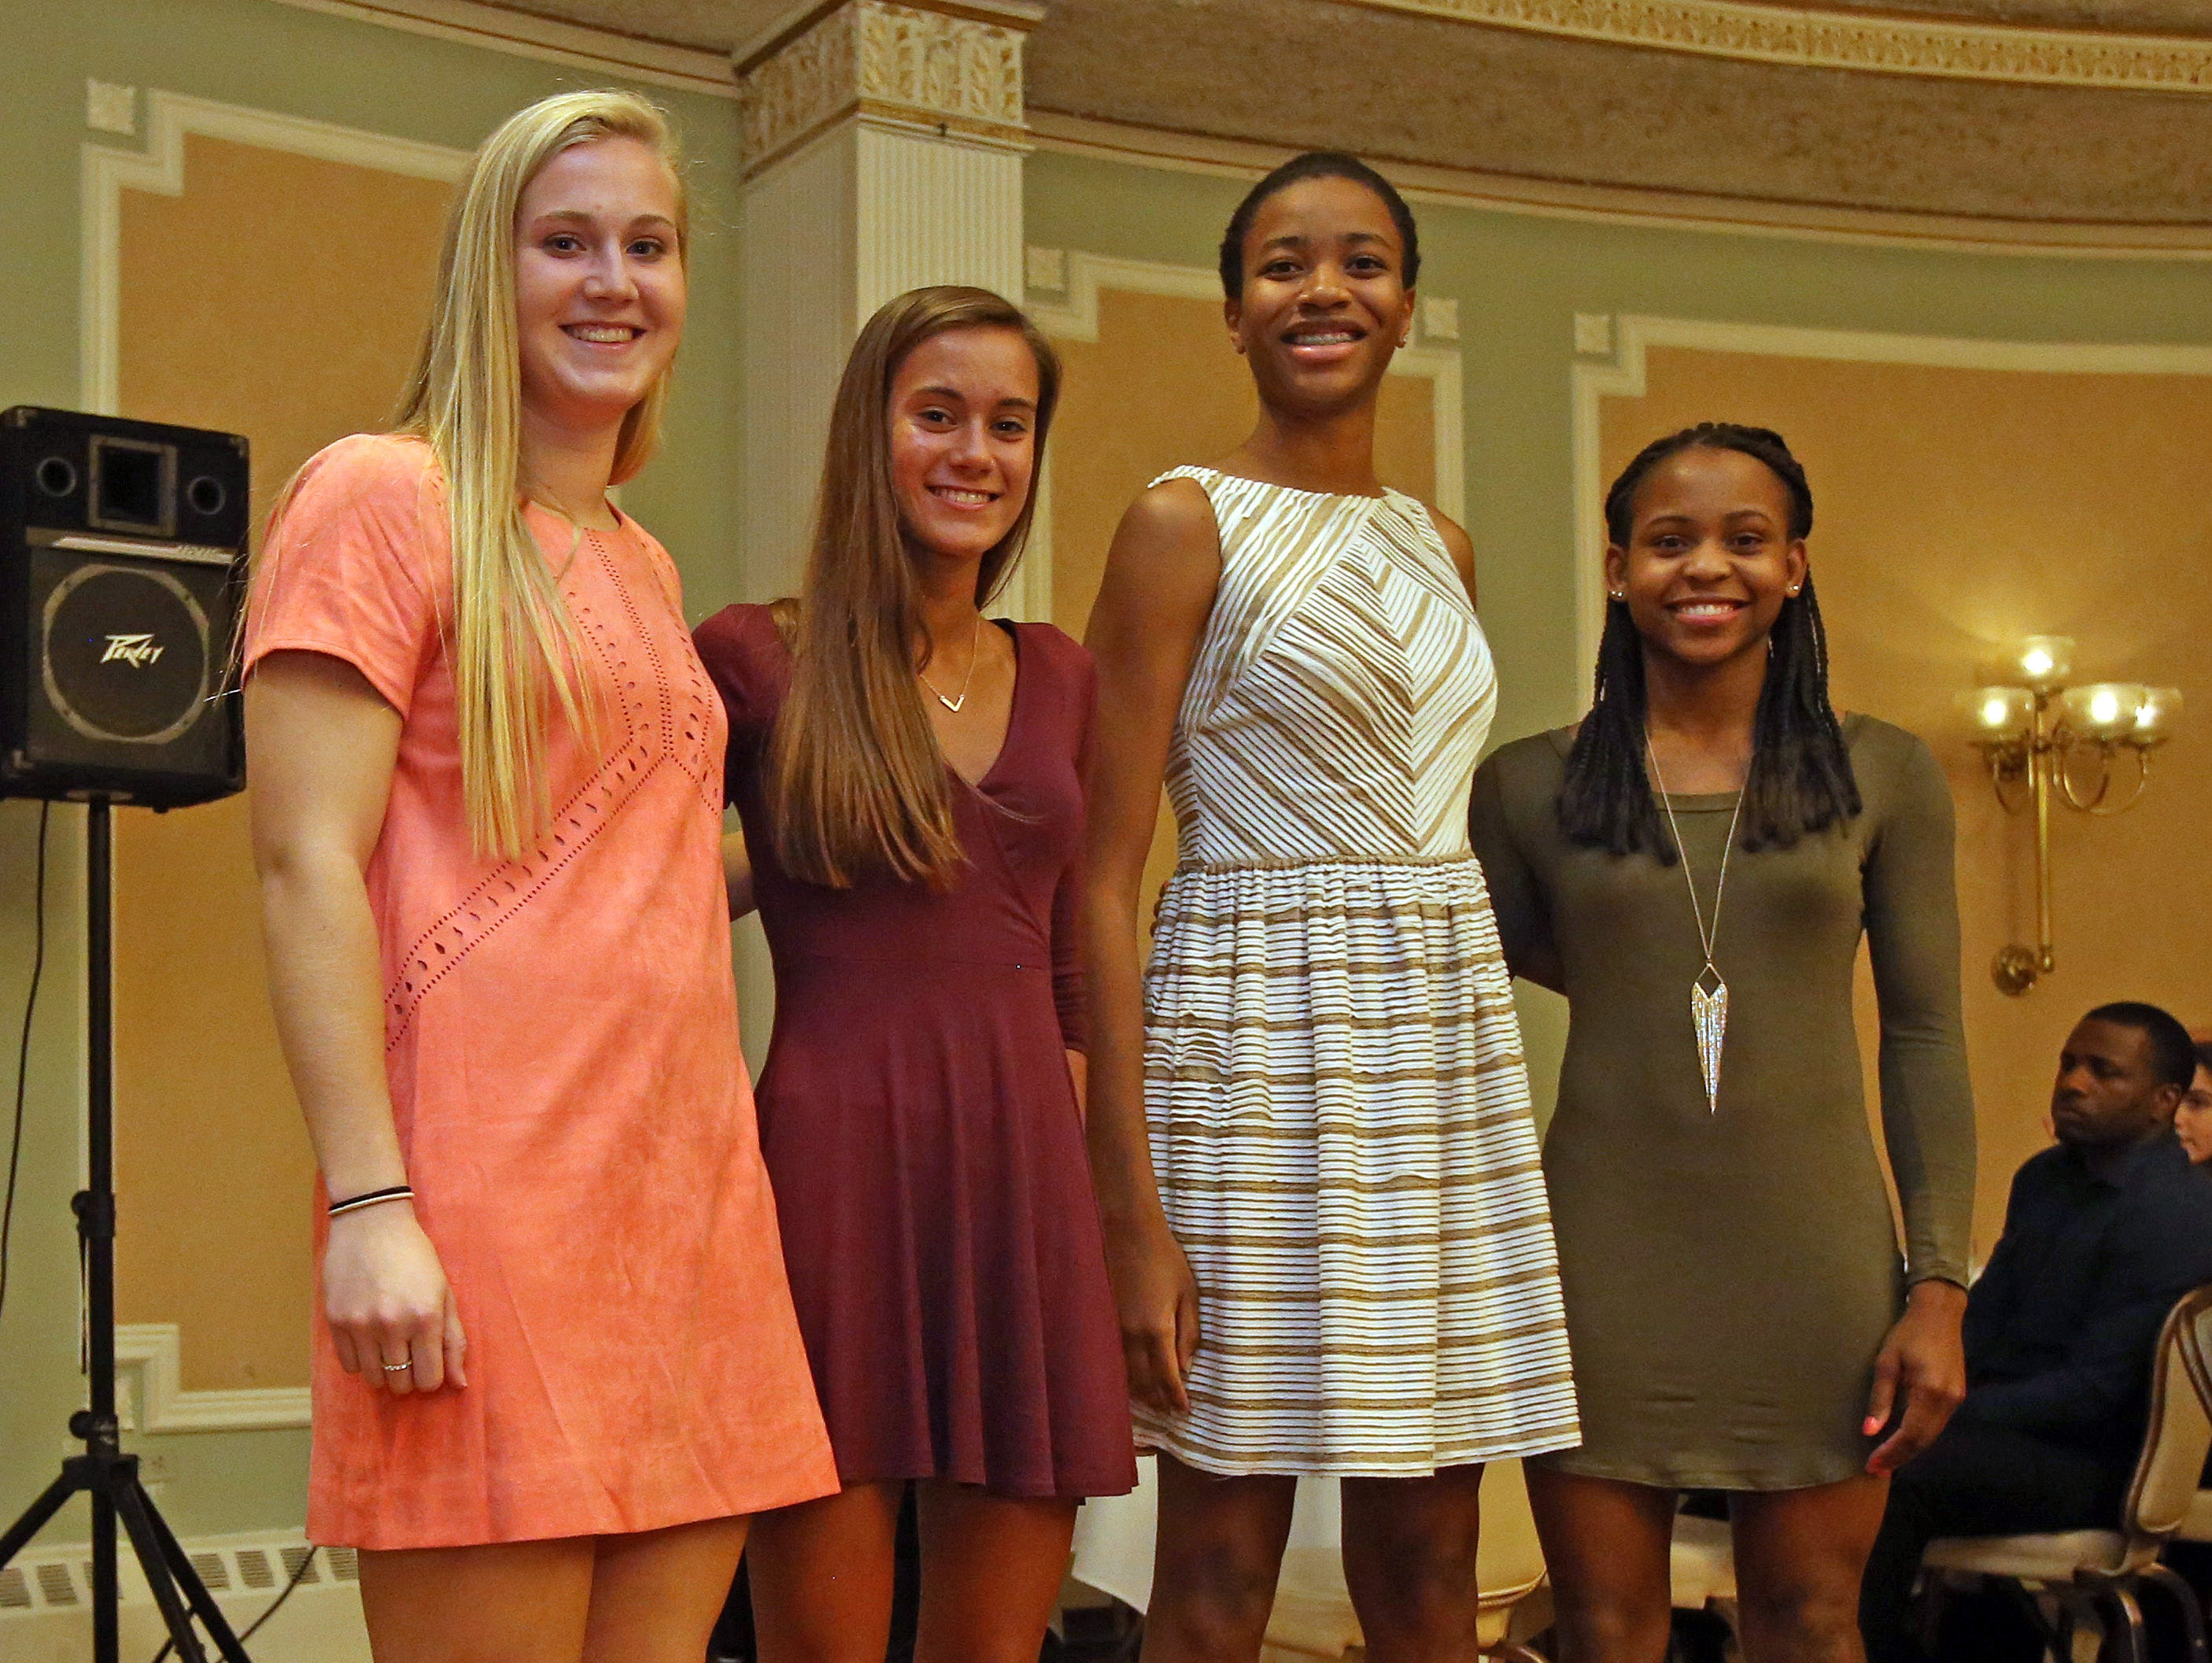 From left, Lauren Gallagher, Dani LaRochelle, Pamela Miceus, and Gabby Cajou were named The Journal News girls basketball first team all-stars during Section 1 Coaches Association girls basketball dinner at Colonial Terrace in Courtlandt Manor on March 29, 2016.